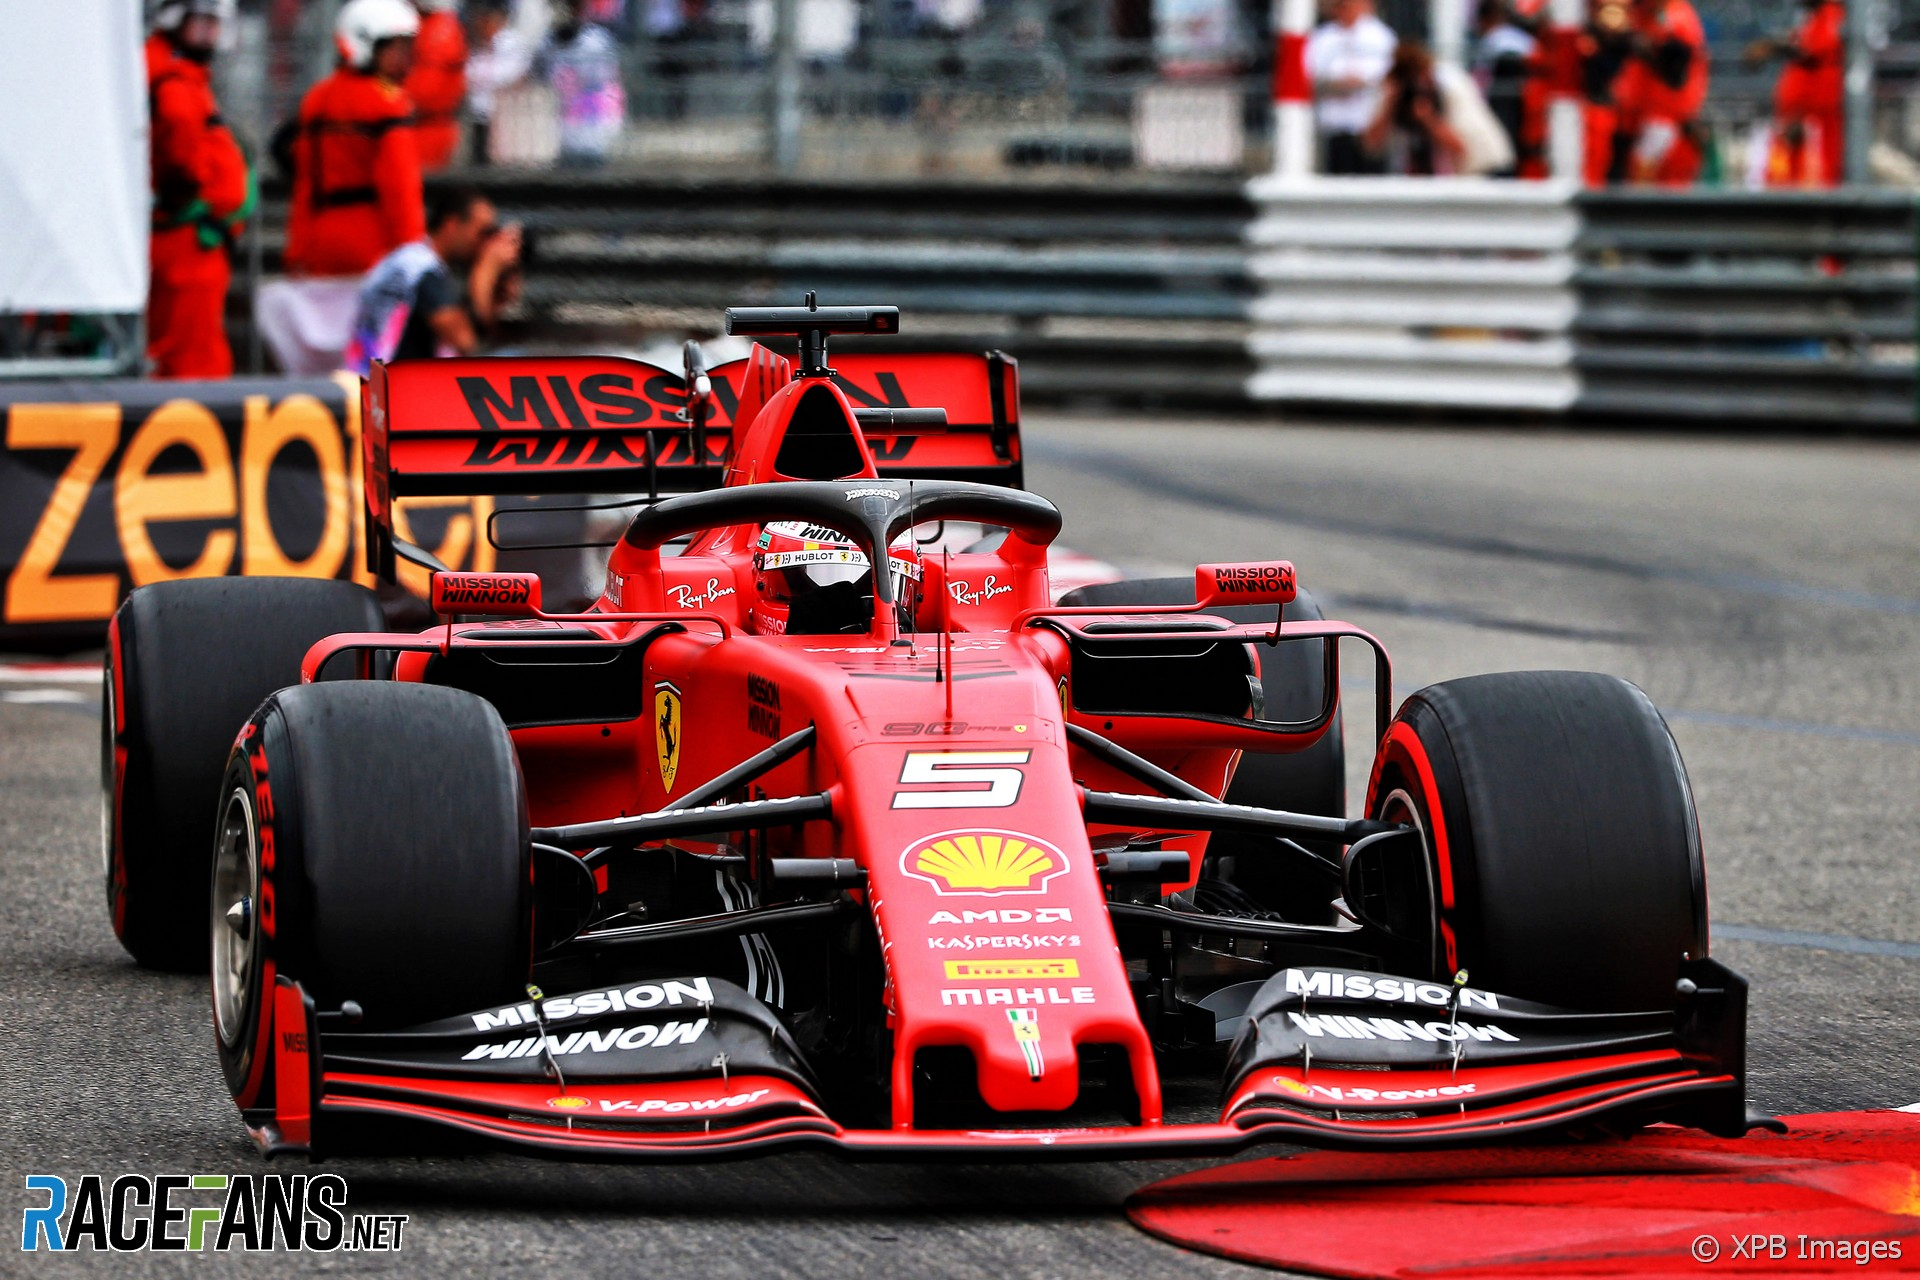 Ferrari sticking with novel front wing concept despite disappointing start to season